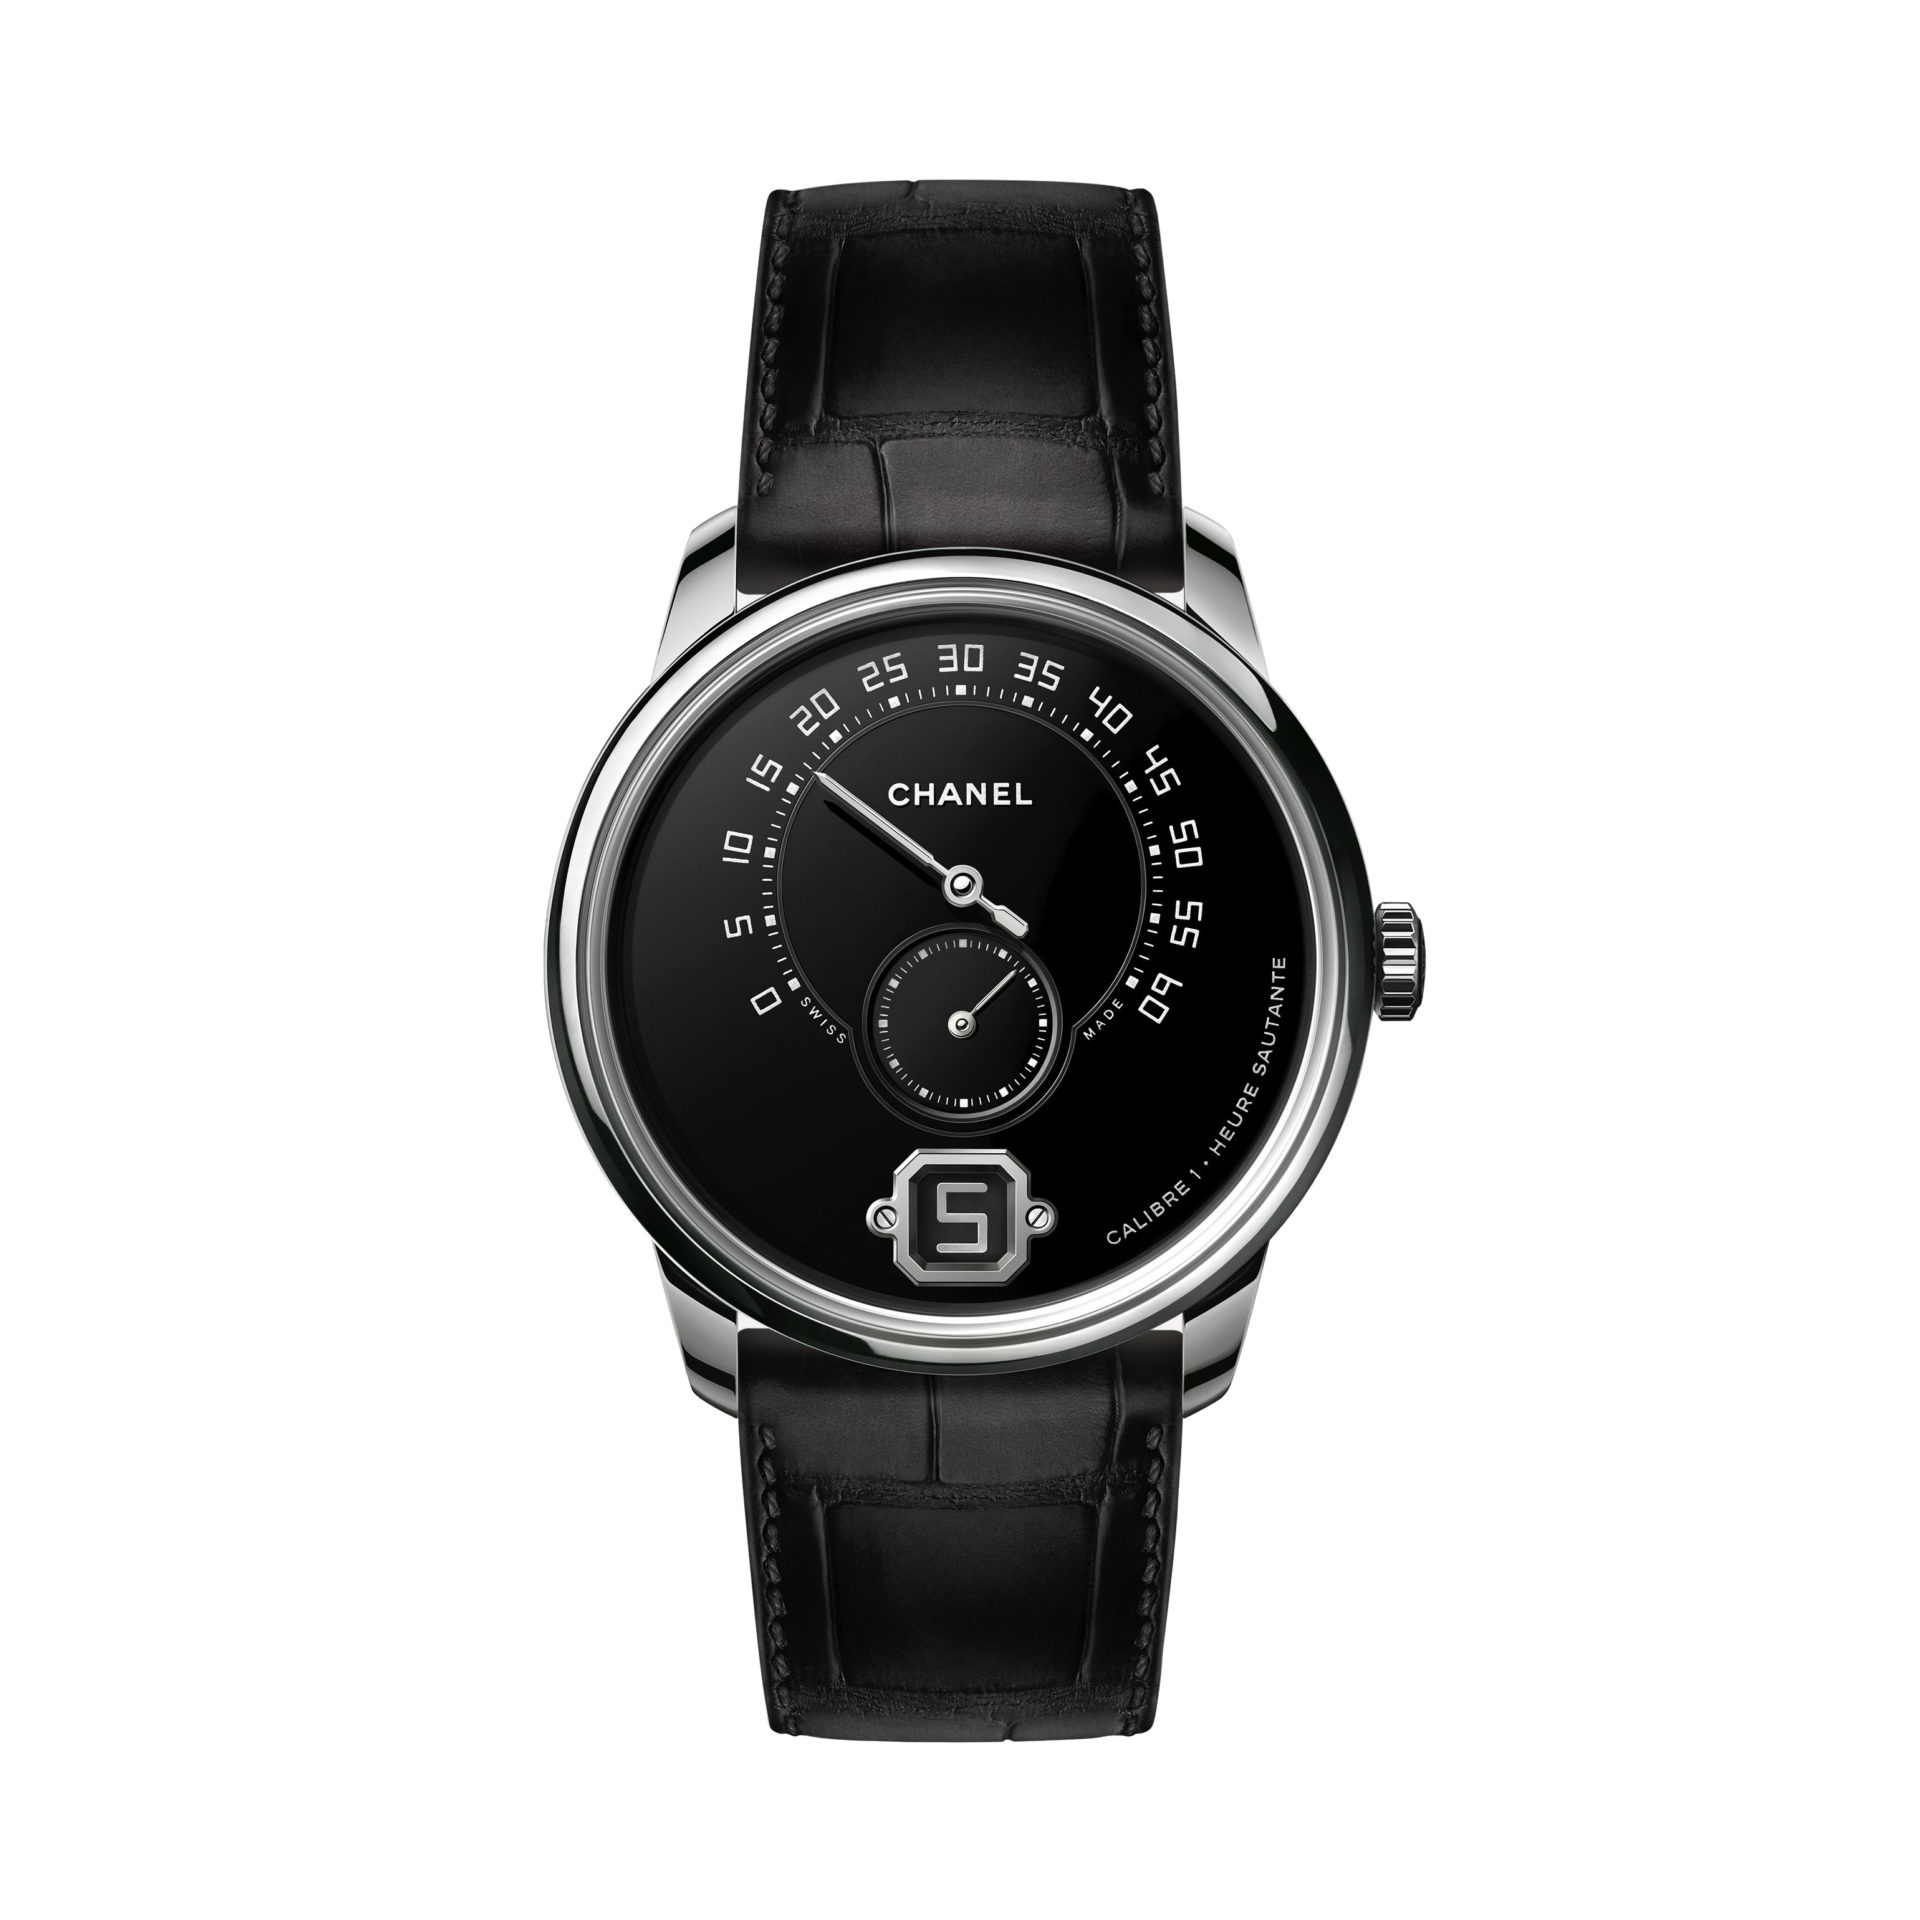 Chanel-Monsieur-de-Chanel-Hall-of-Time-H4801